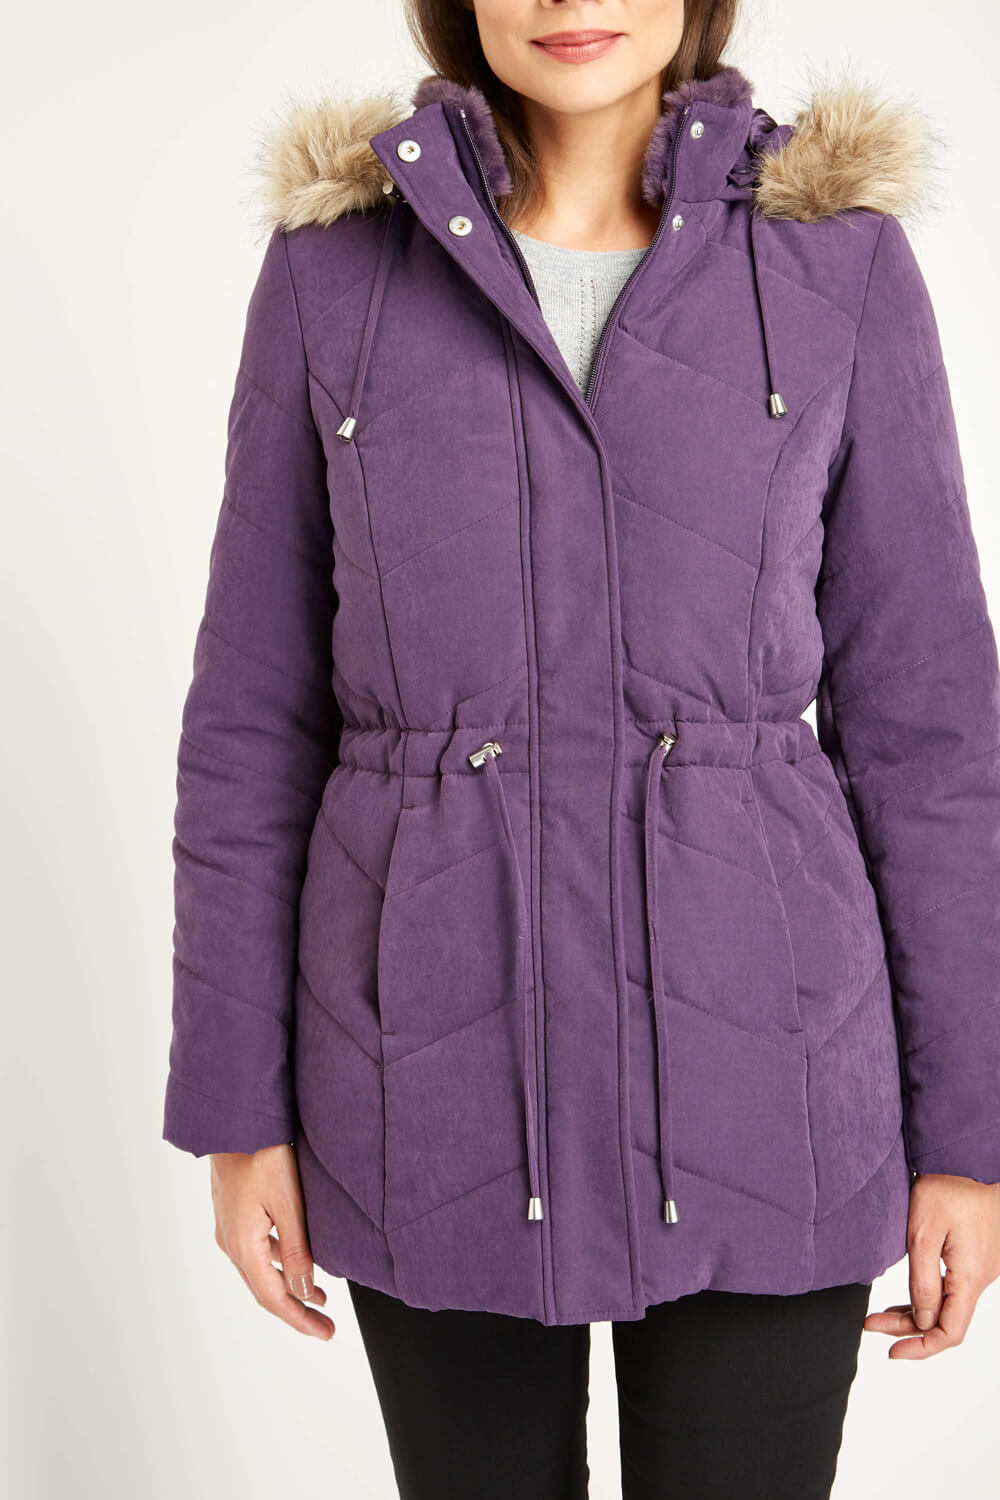 Roman-Originals-Women-039-s-Blue-Quilted-Parka-Coat-with-Hood-Sizes-10-20 thumbnail 25